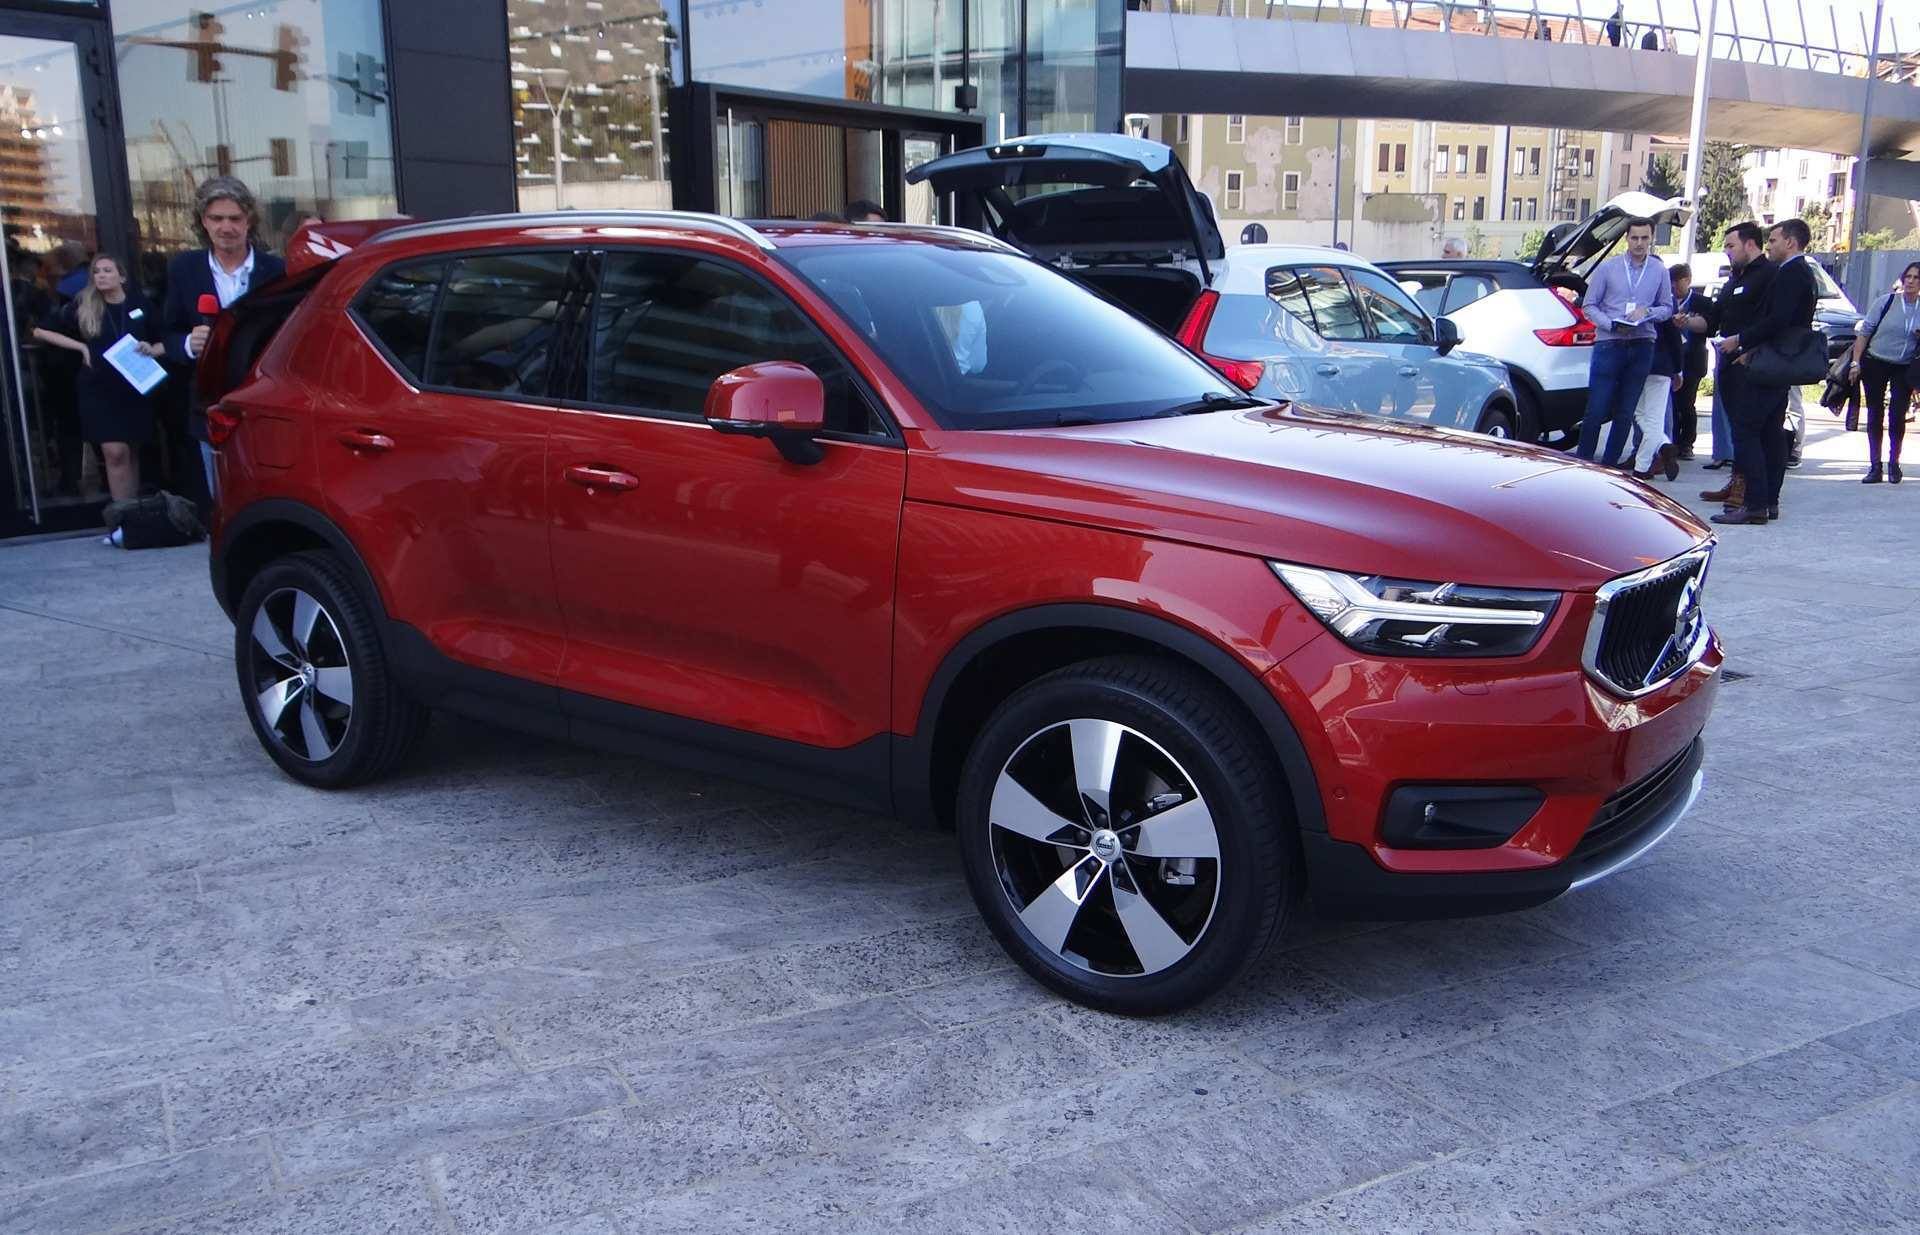 63 Gallery of 2020 Volvo Xc40 Gas Mileage Spesification with 2020 Volvo Xc40 Gas Mileage